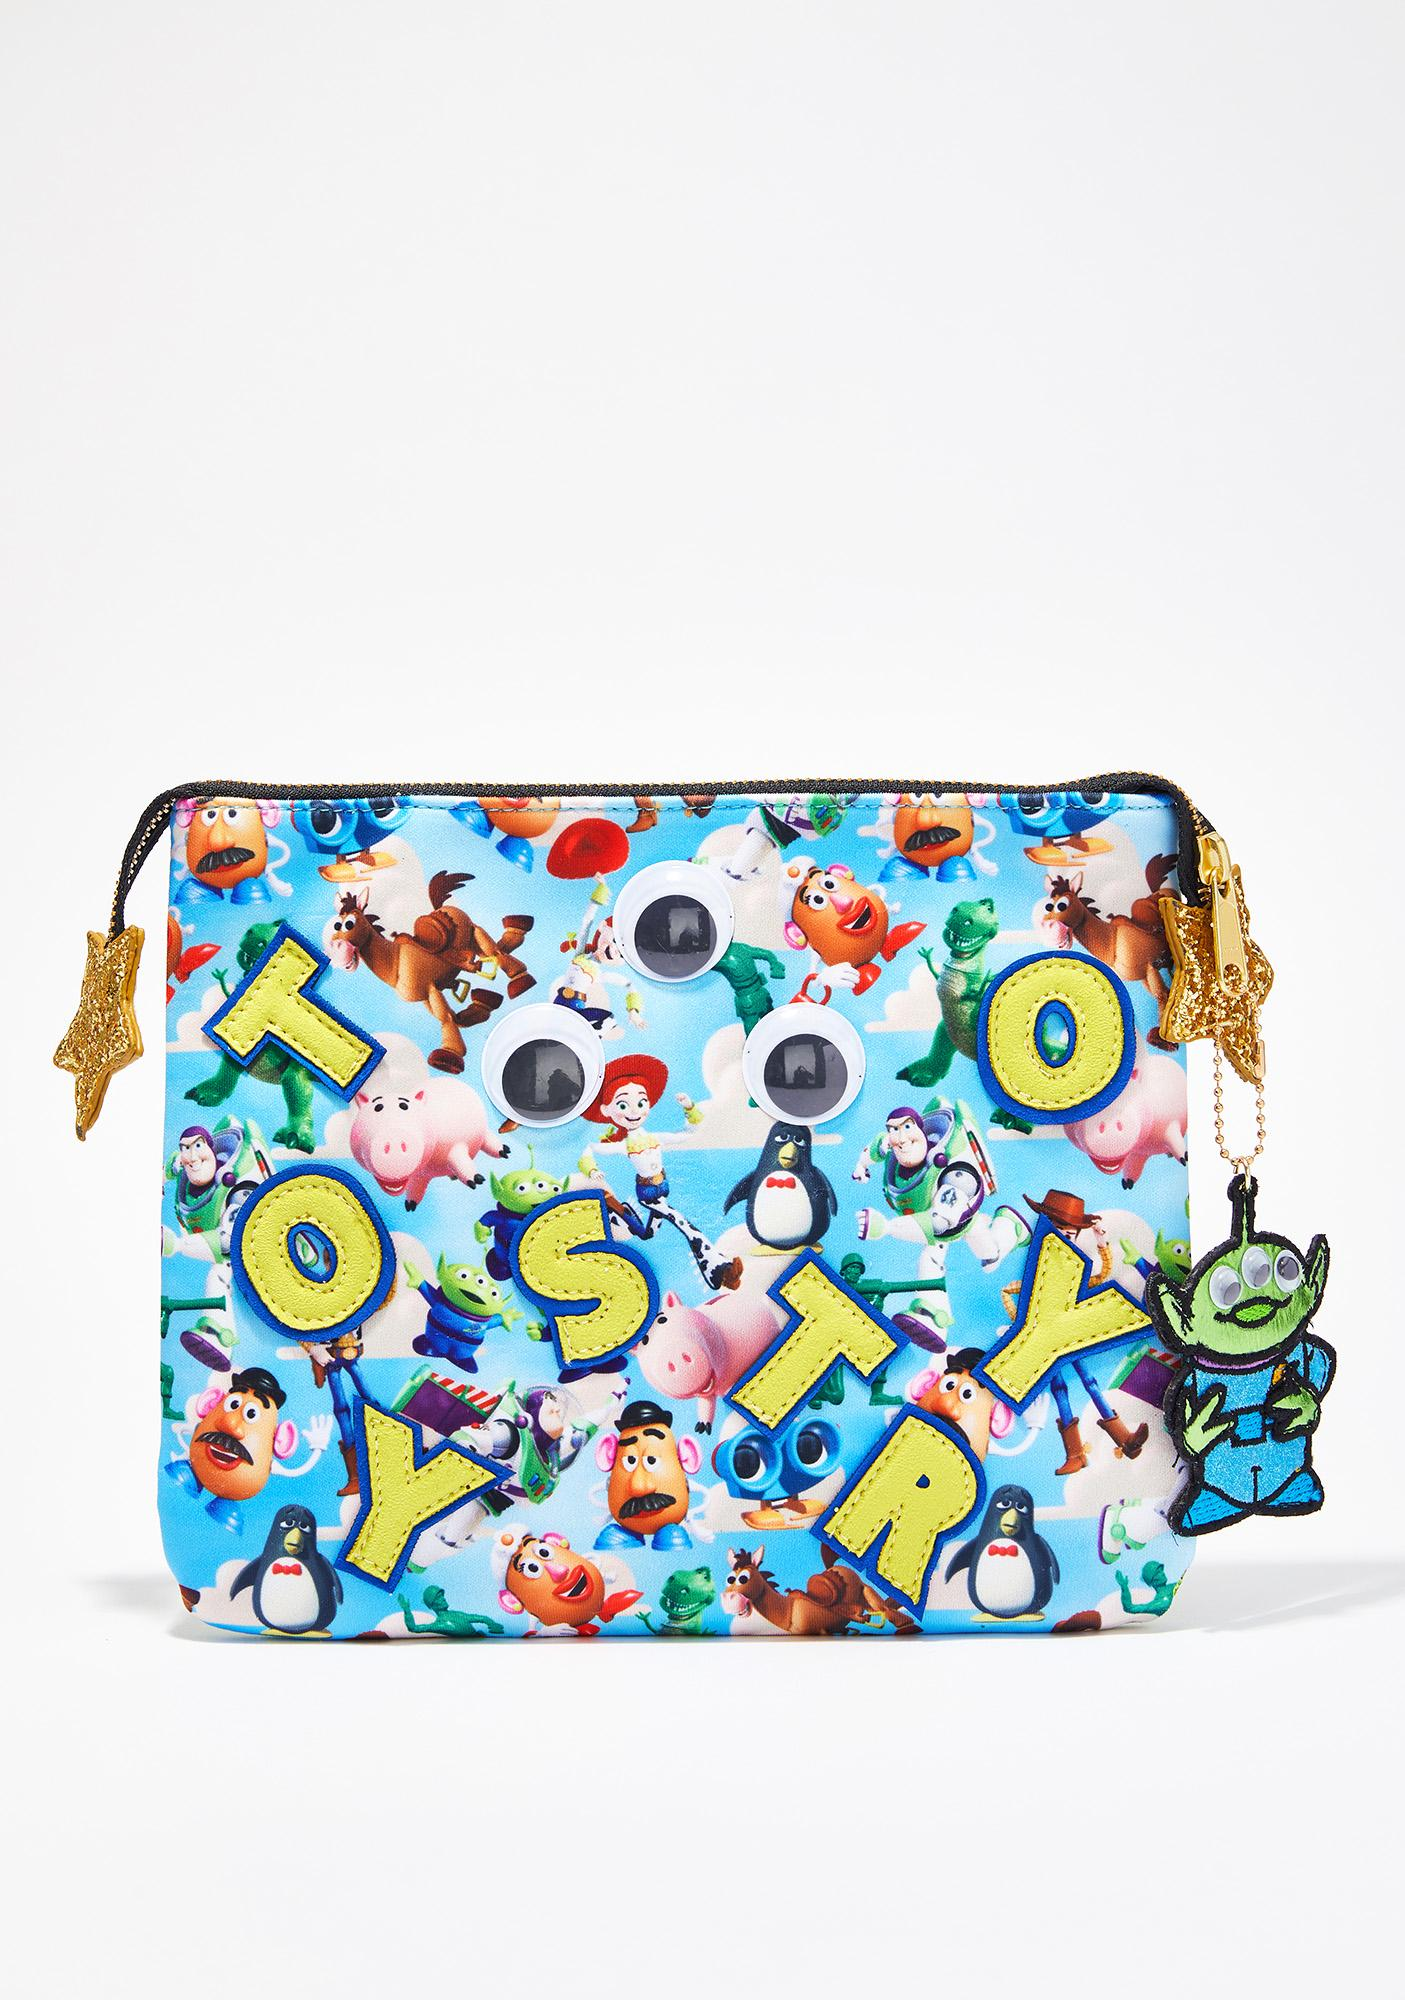 Irregular Choice x Toy Story Eternally Grateful Bag